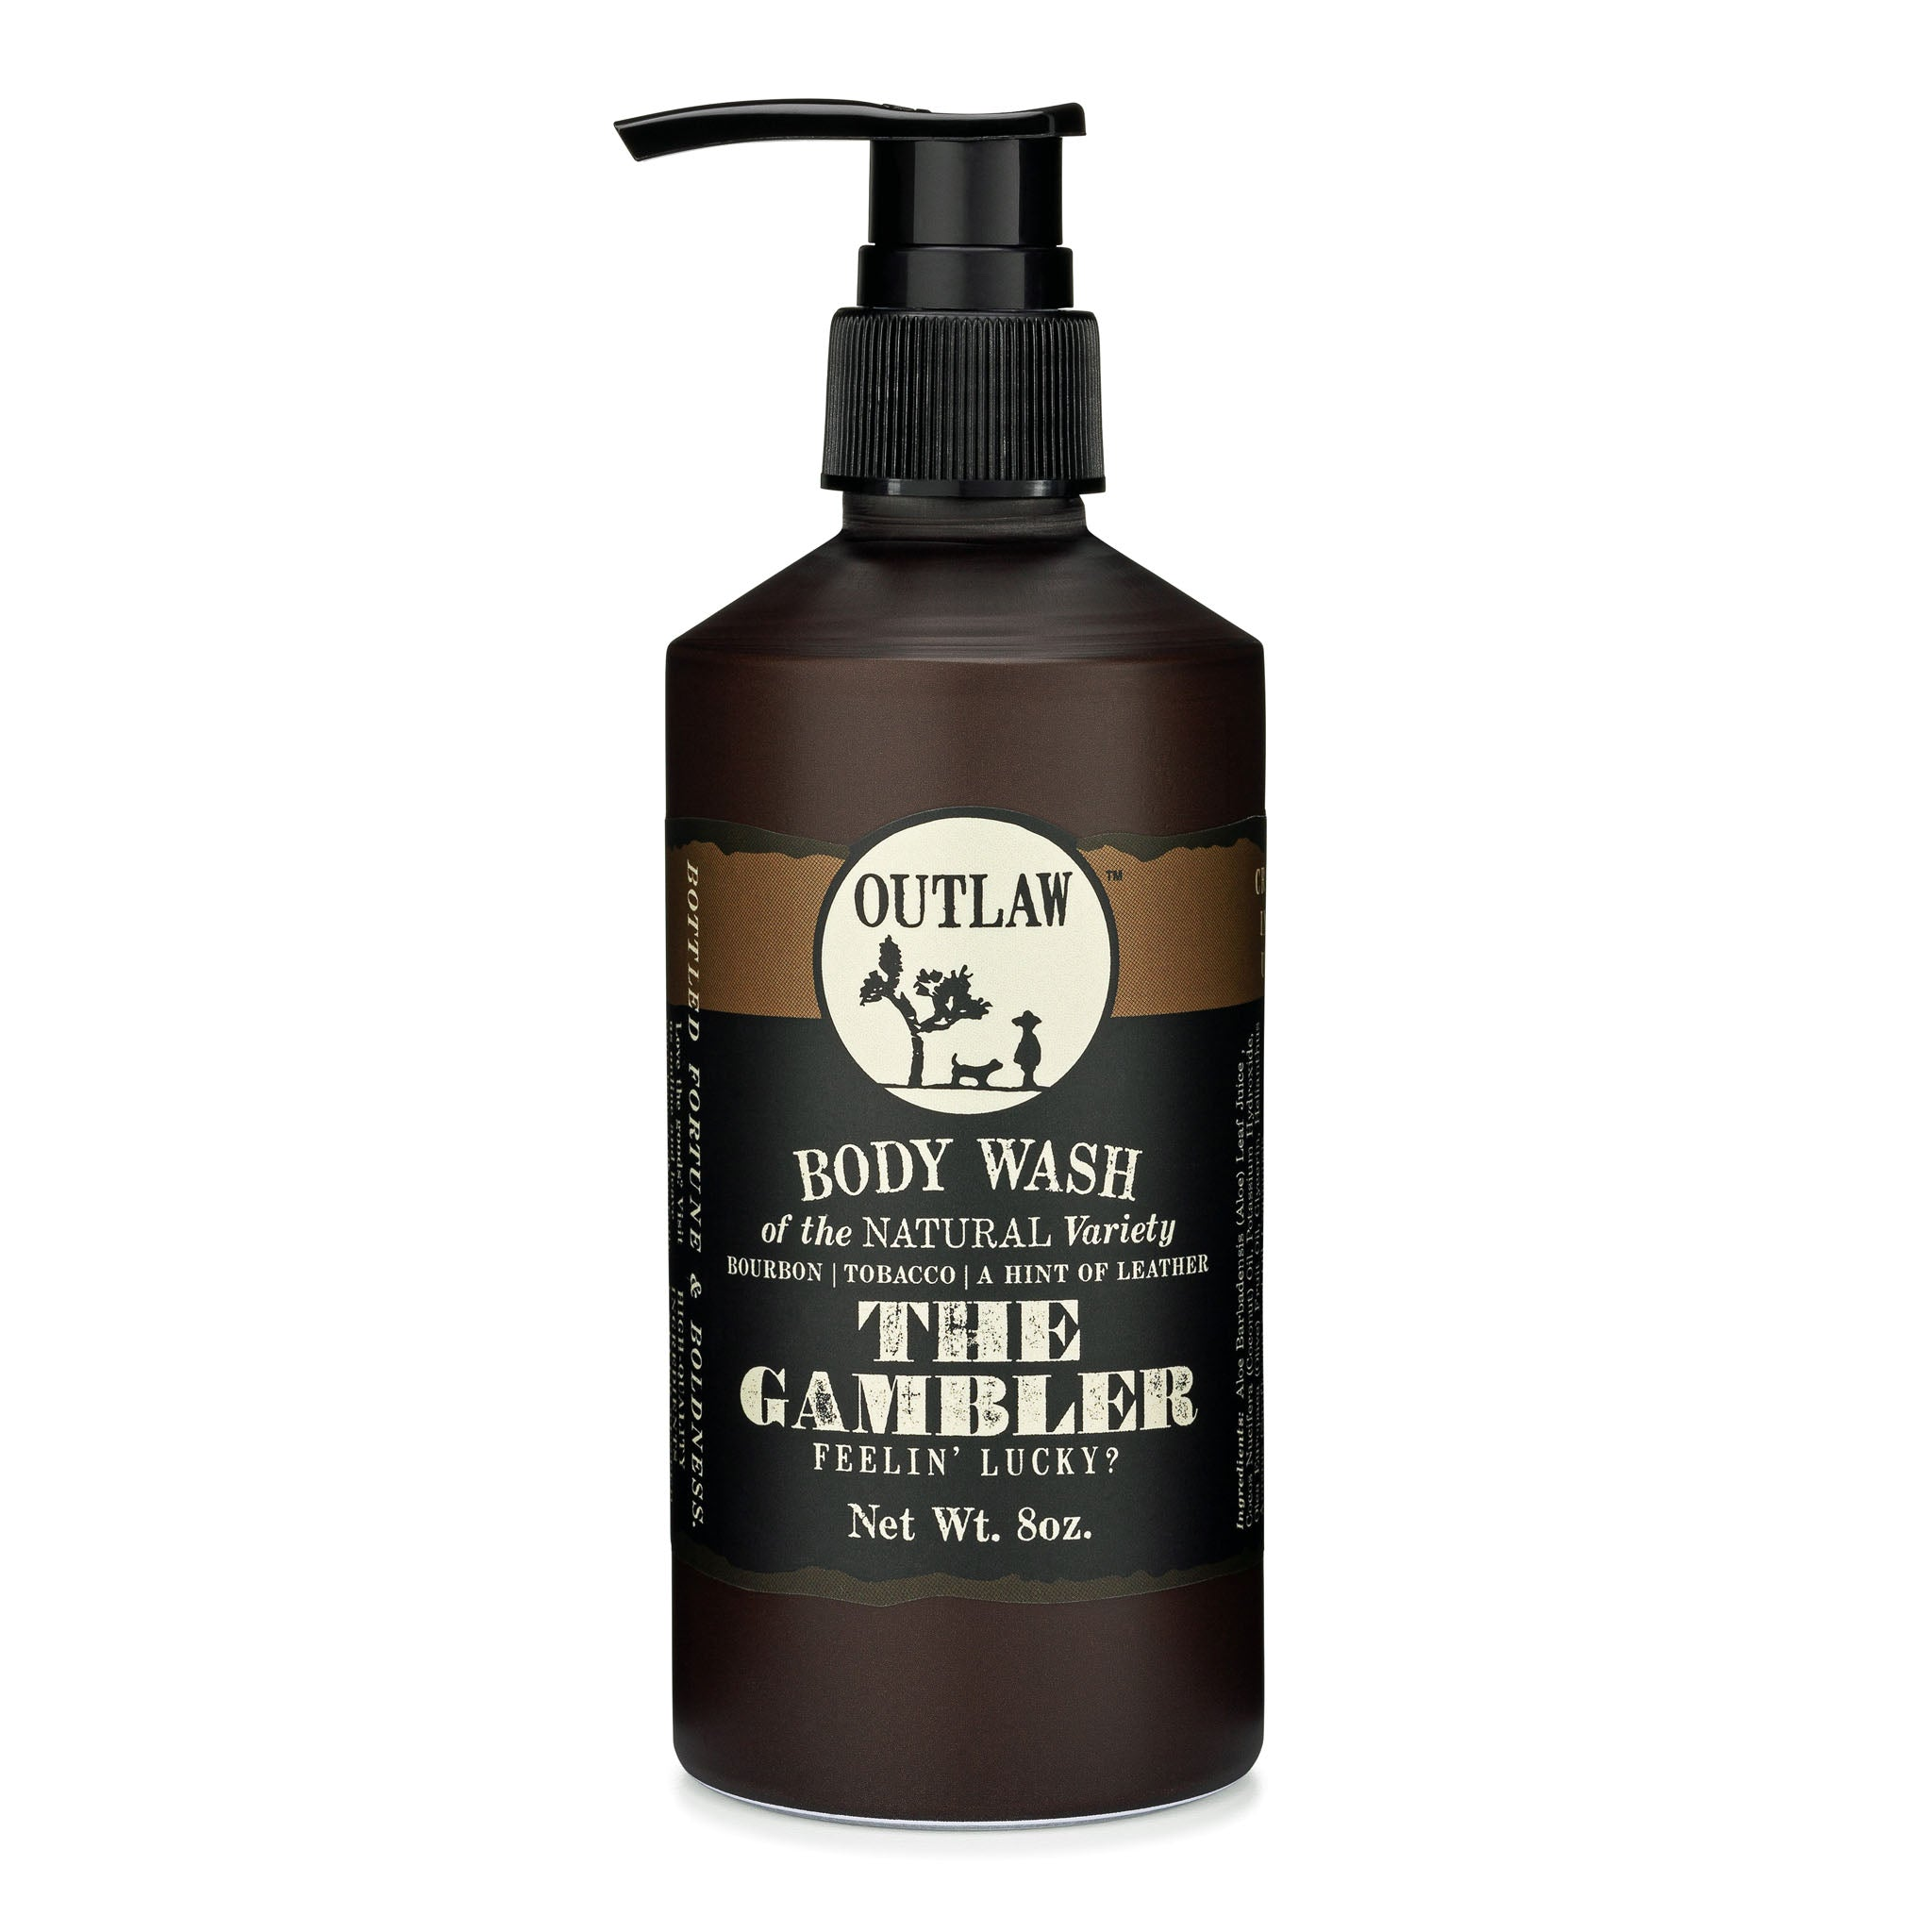 The Gambler Body Wash